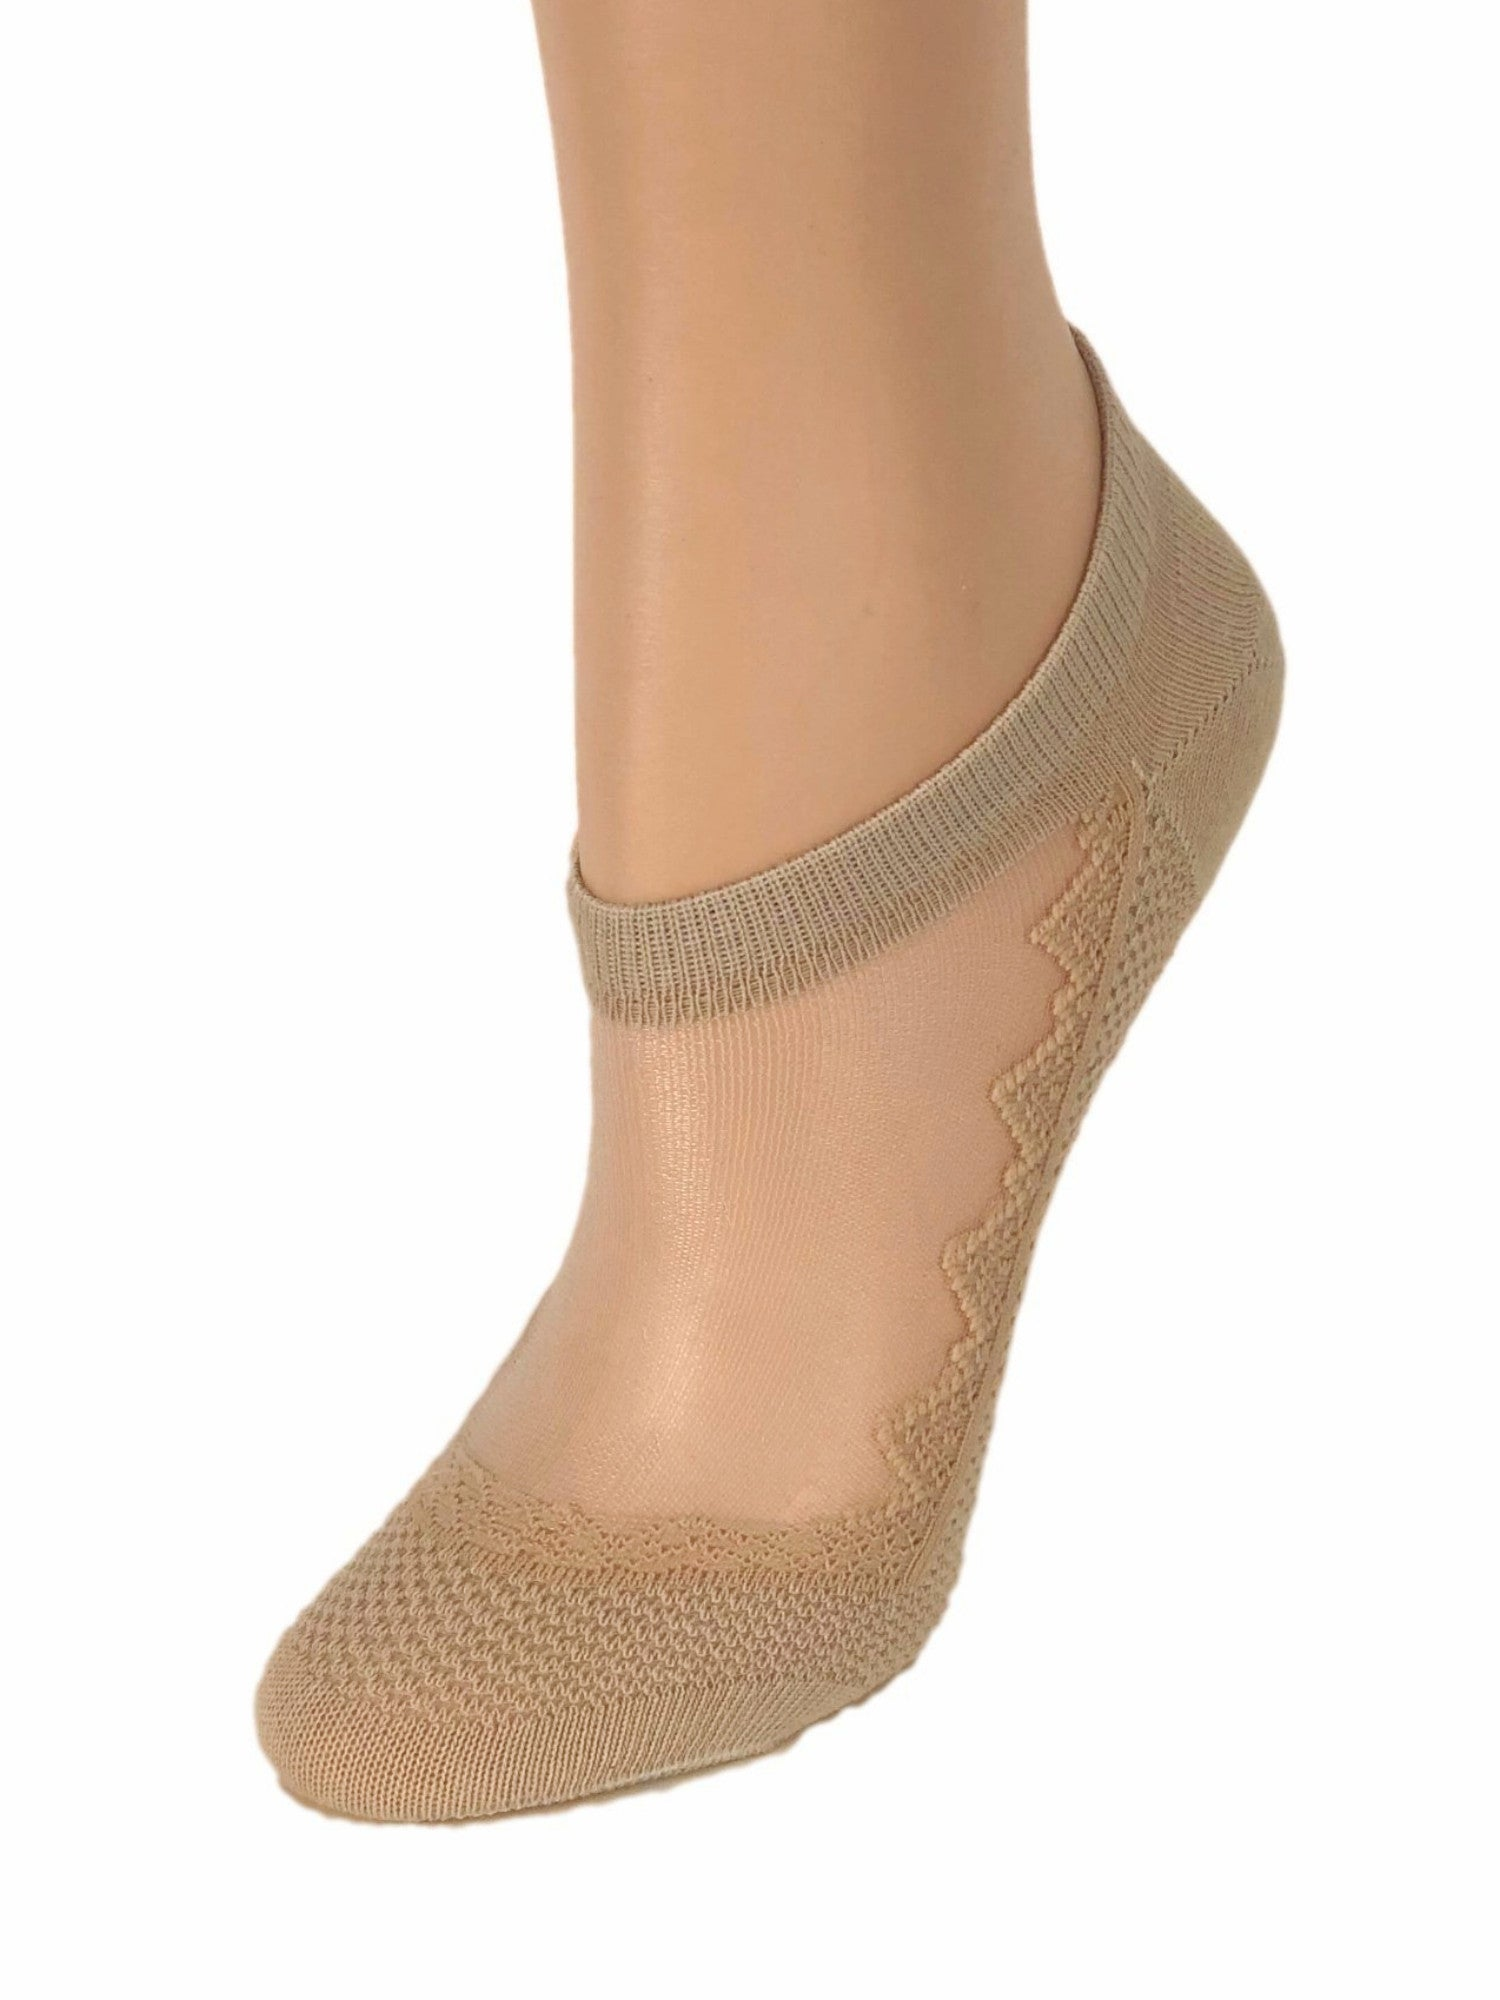 Beautiful Brown Ankle Sheer Socks - Global Trendz Fashion®